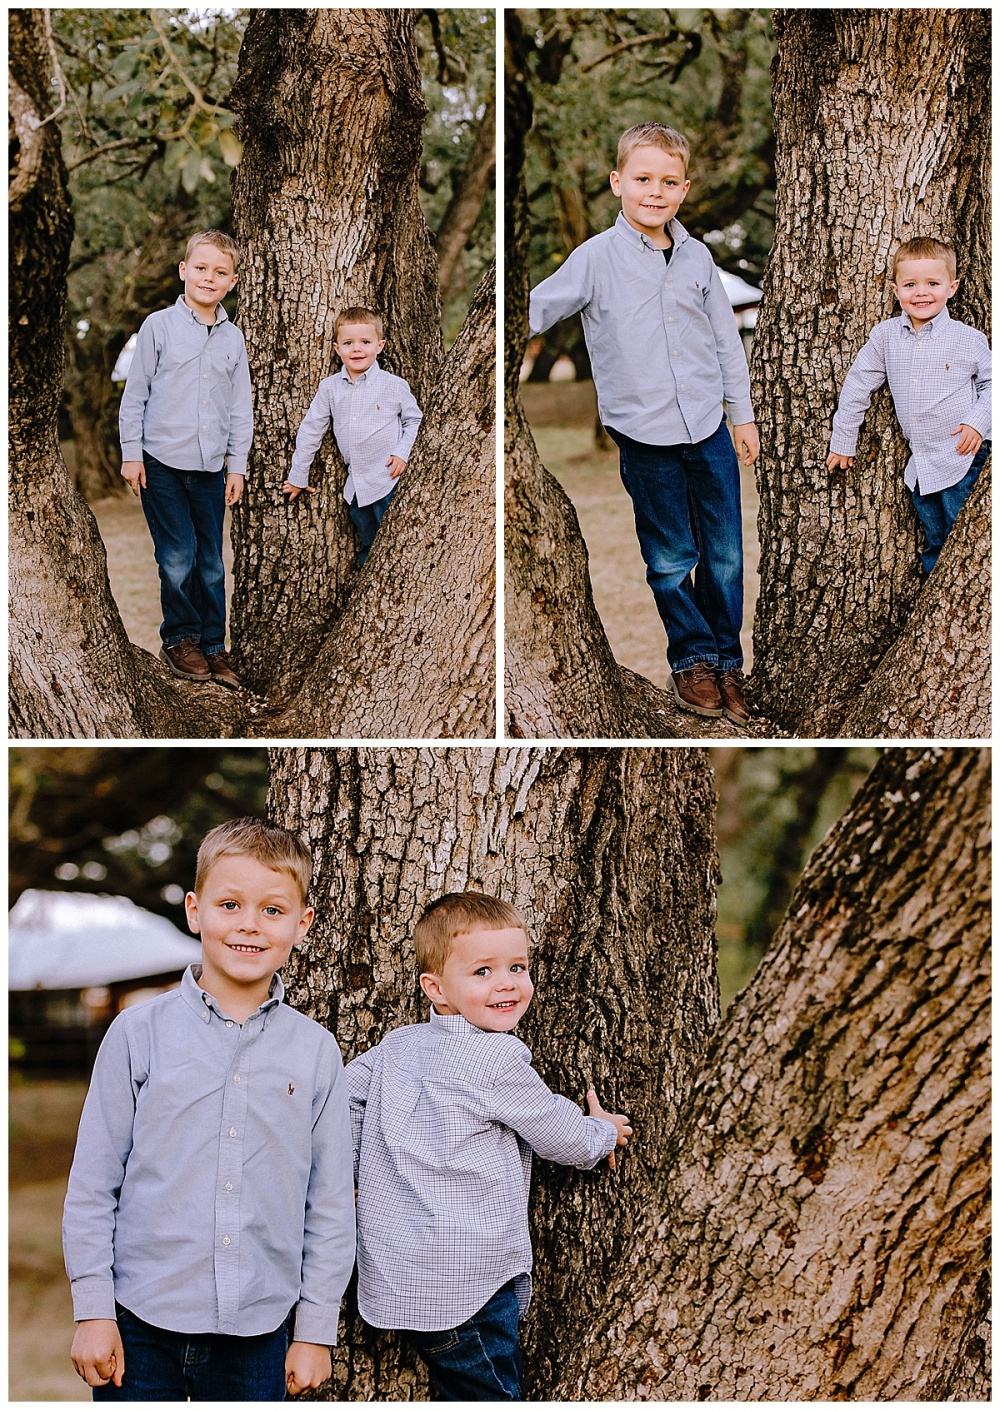 Family-Photographer-La-Vernia-Texas-LV-C-of-C-Hall-Fall-Photos-Brothers-Carly-Barton-Photography_0002.jpg